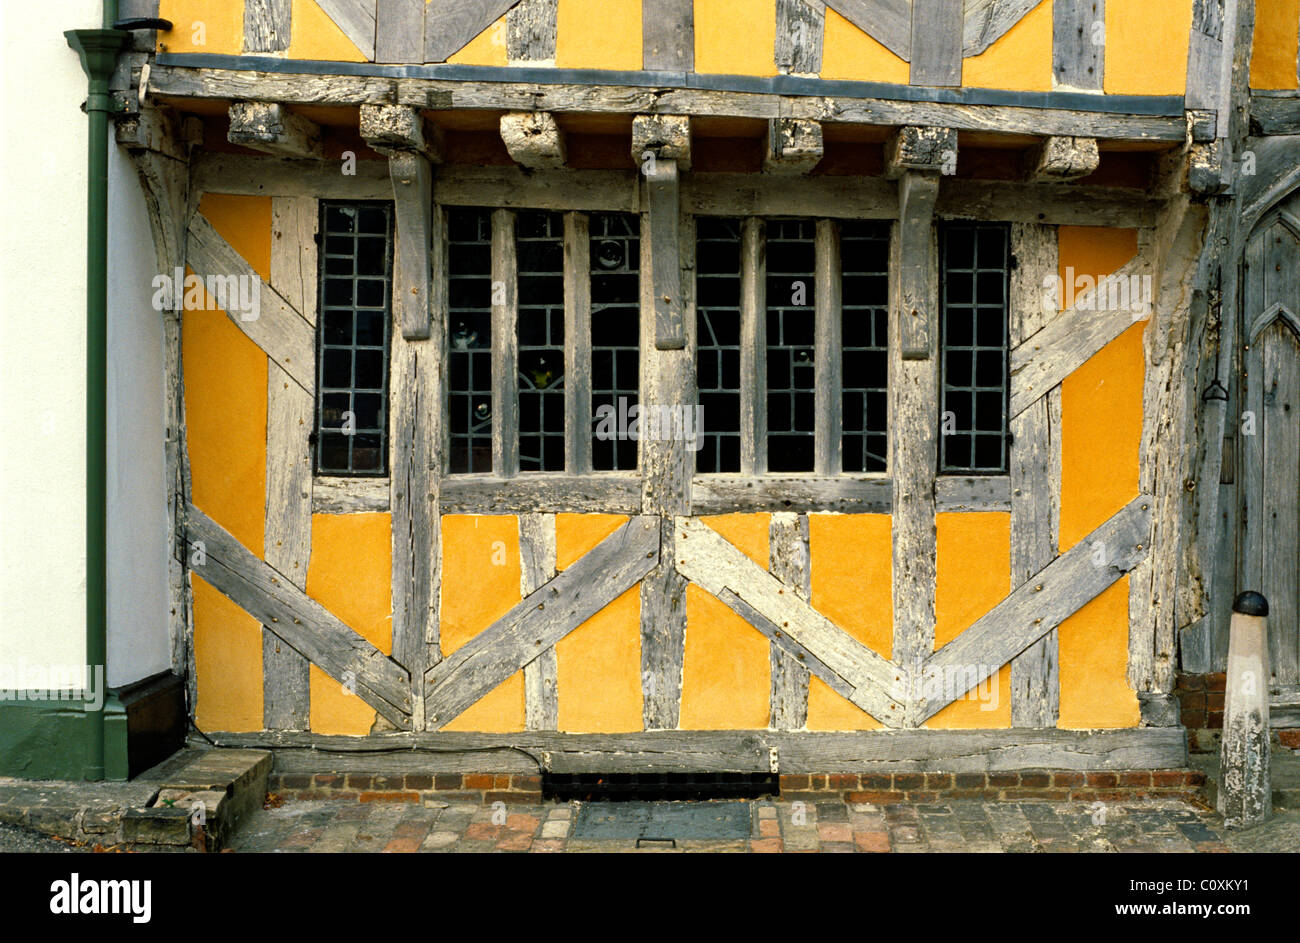 Detail of old timber framed building in Lavenham Suffolk - Stock Image